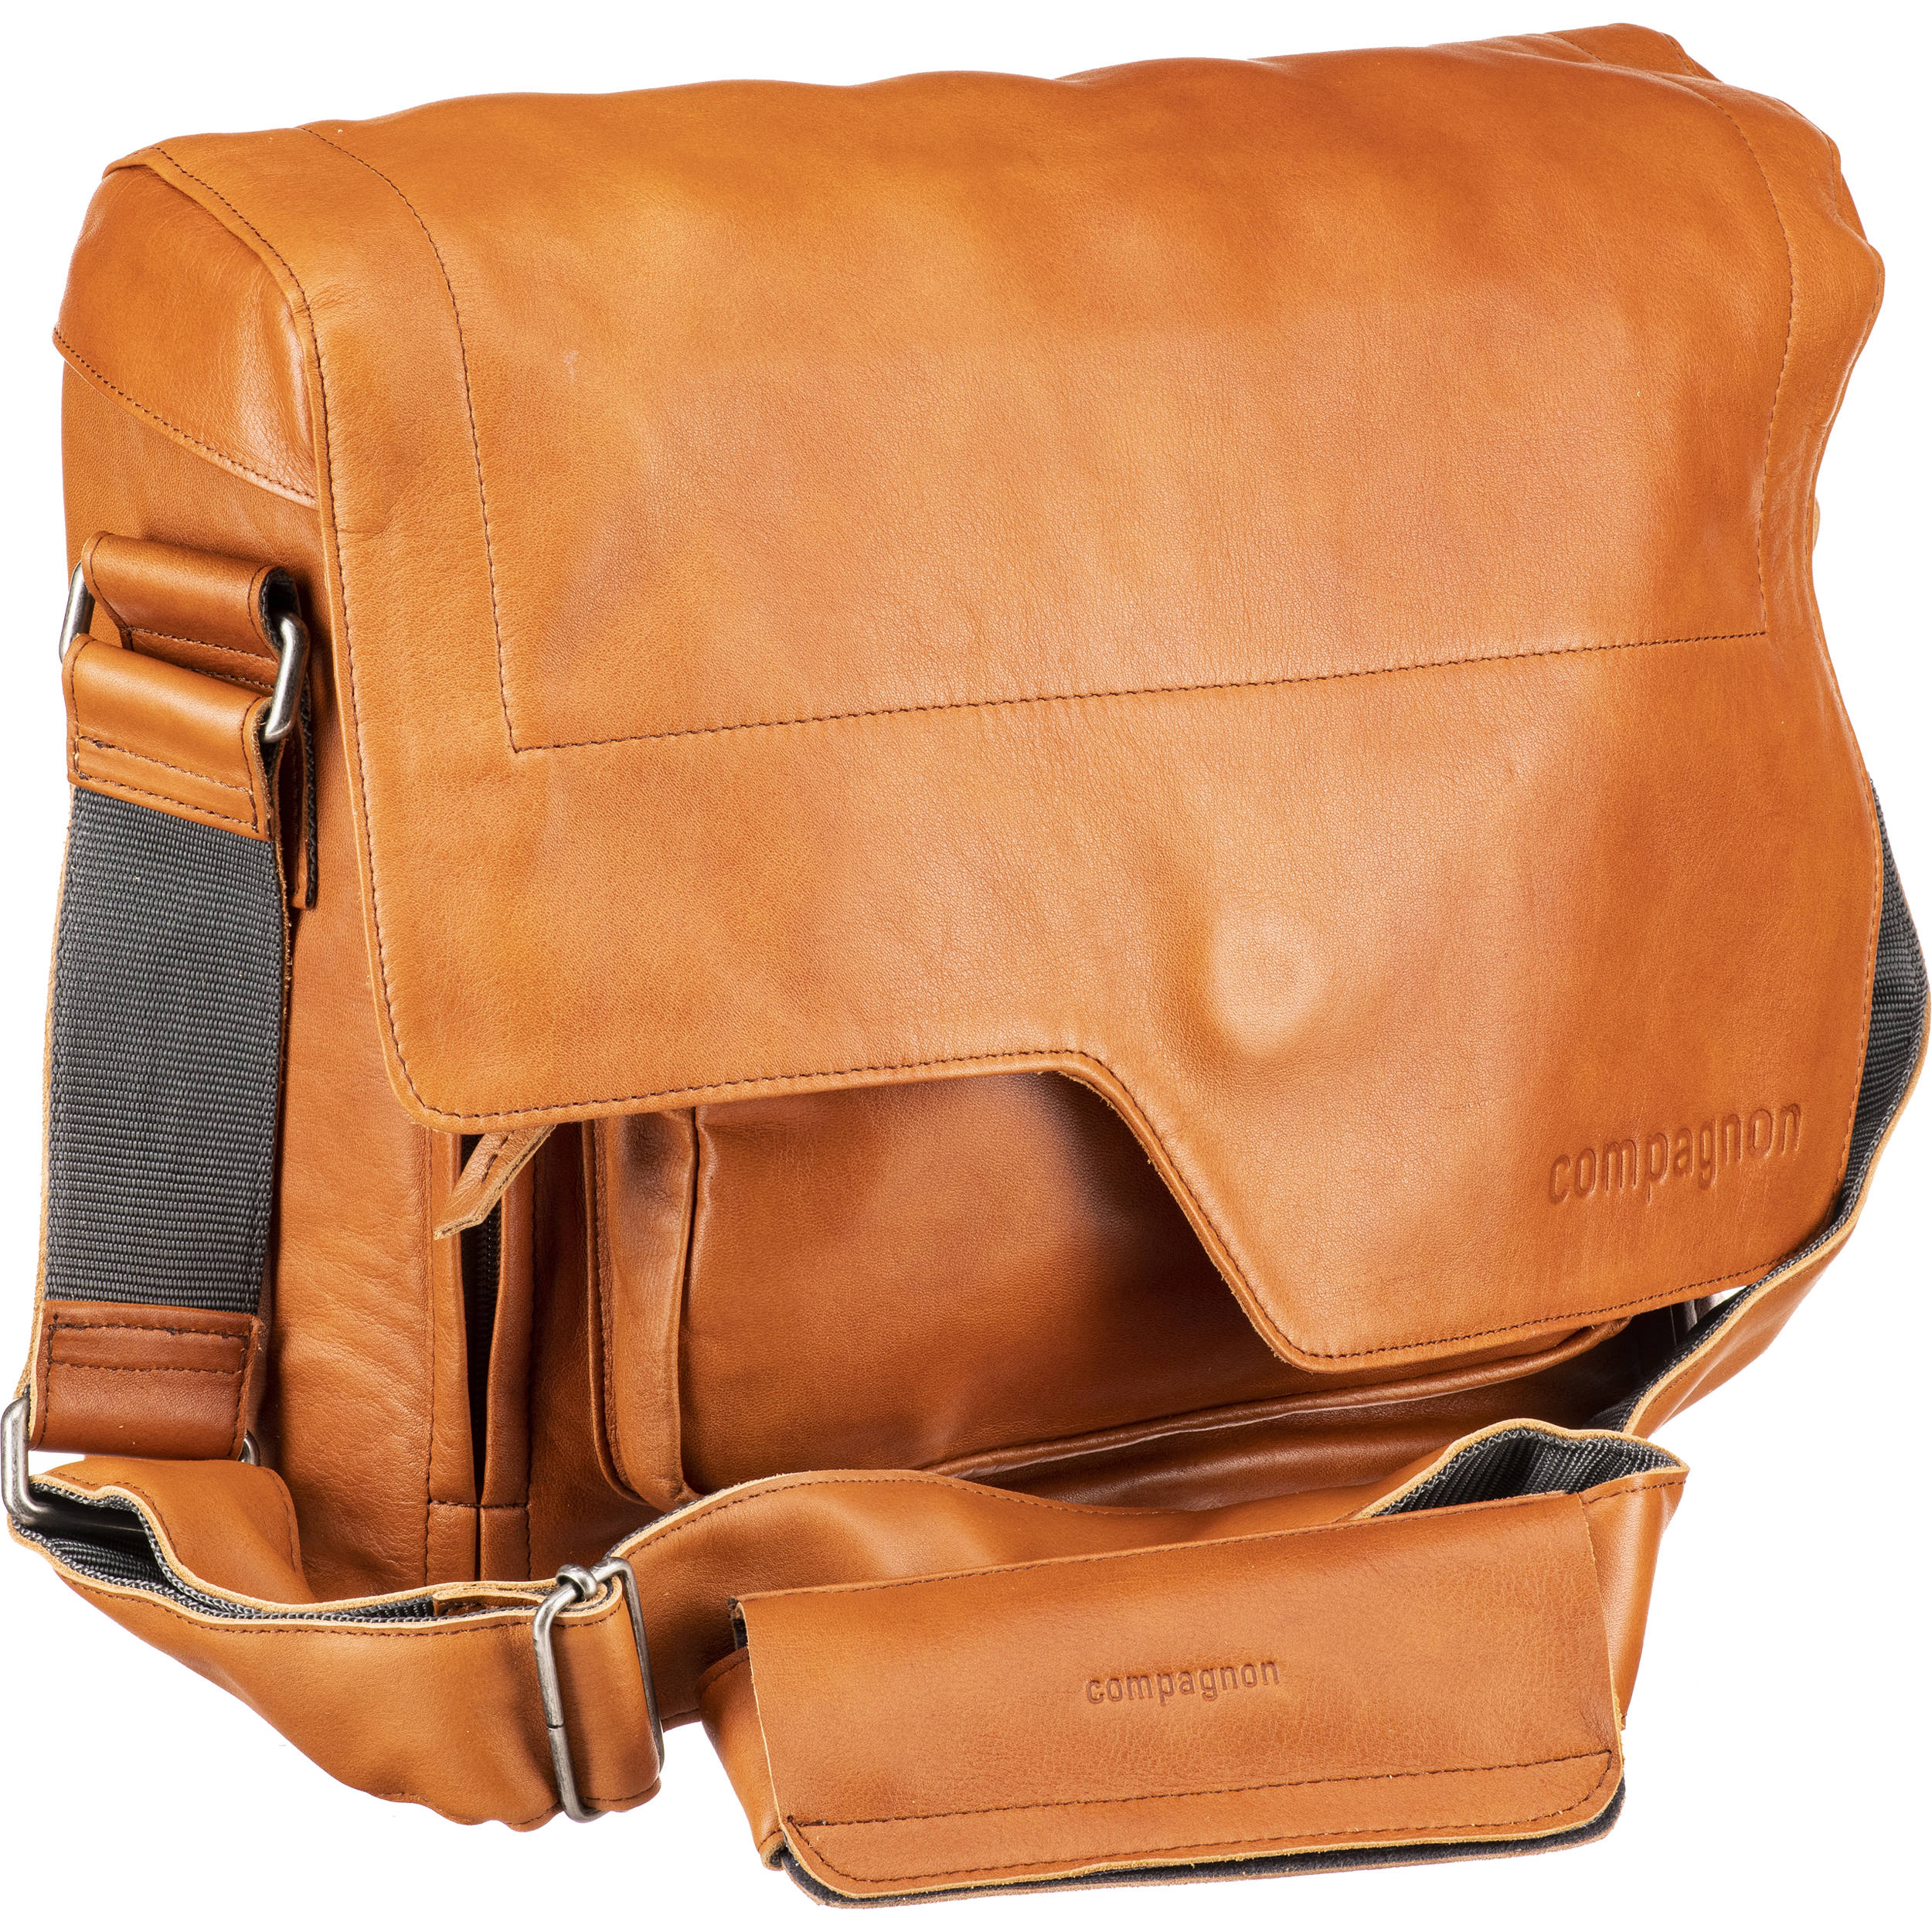 Compagnon The Messenger Generation 2 Camera Bag Light Brown Leather